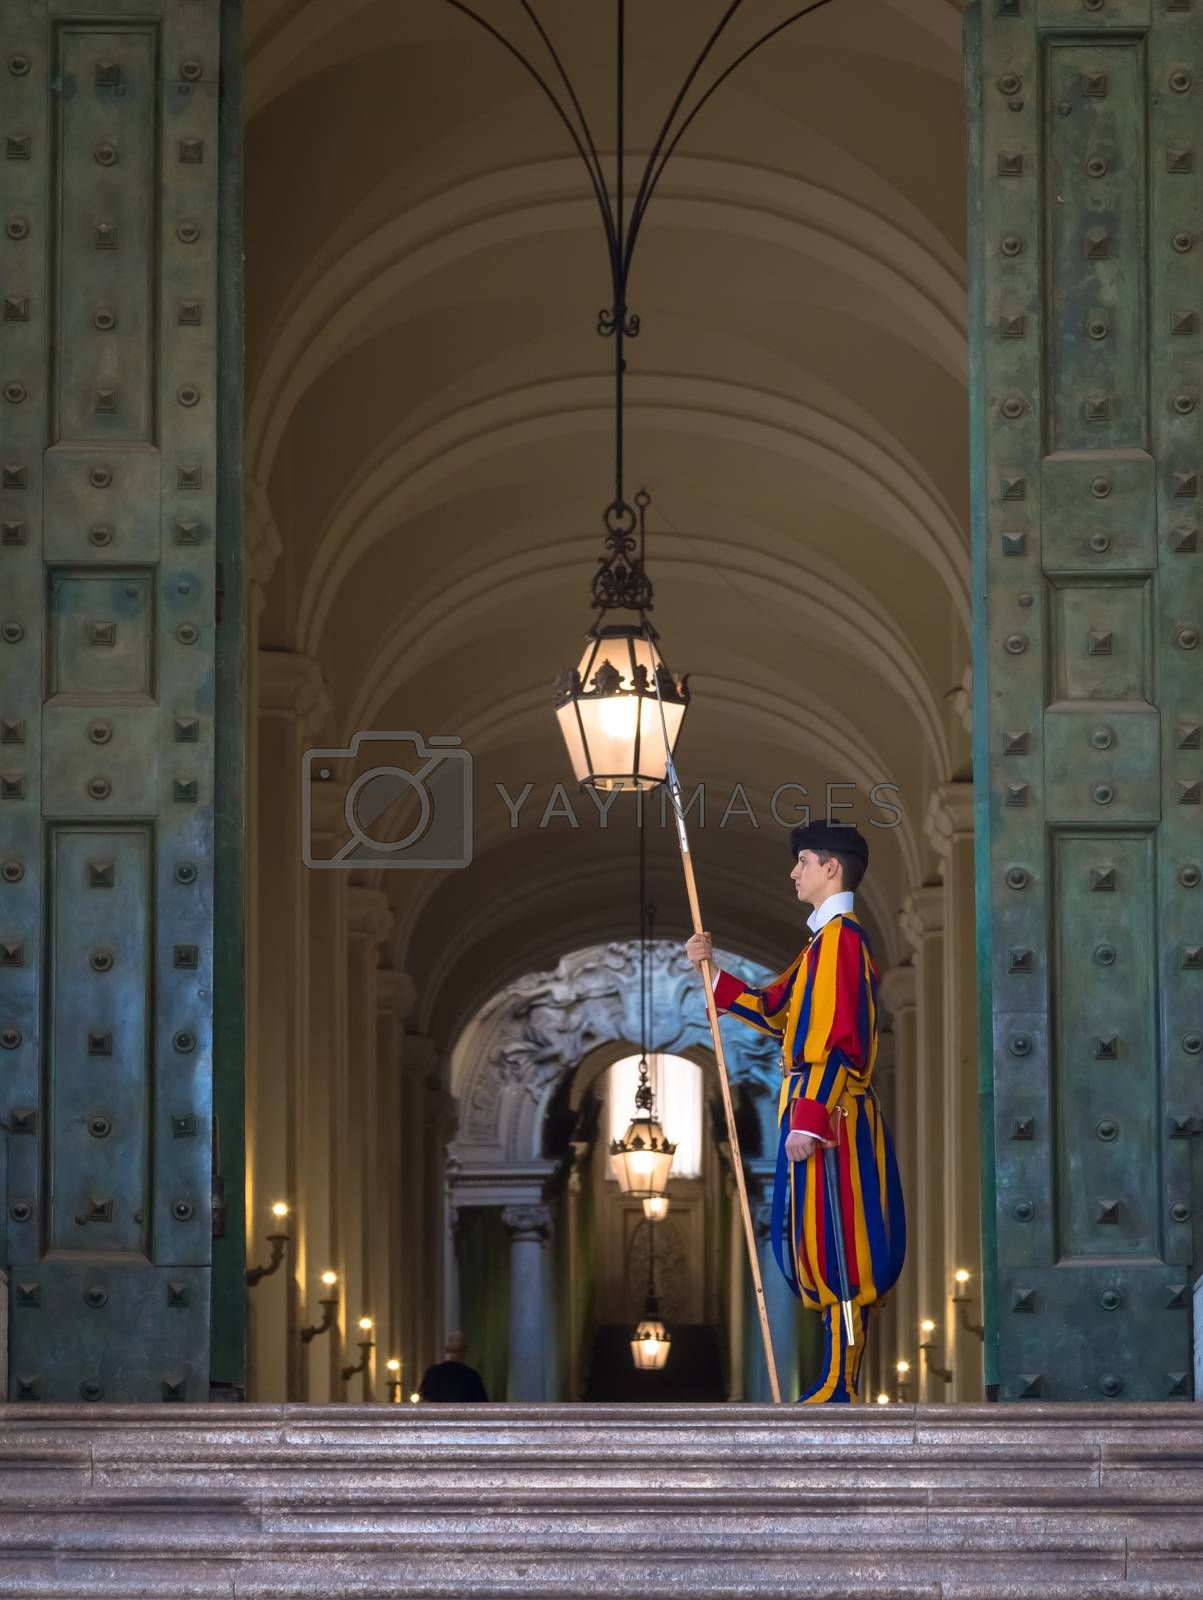 ROME, VATICAN STATE - August 24, 2018: Pontifical Swiss Guard at the entrance of the Vatican State